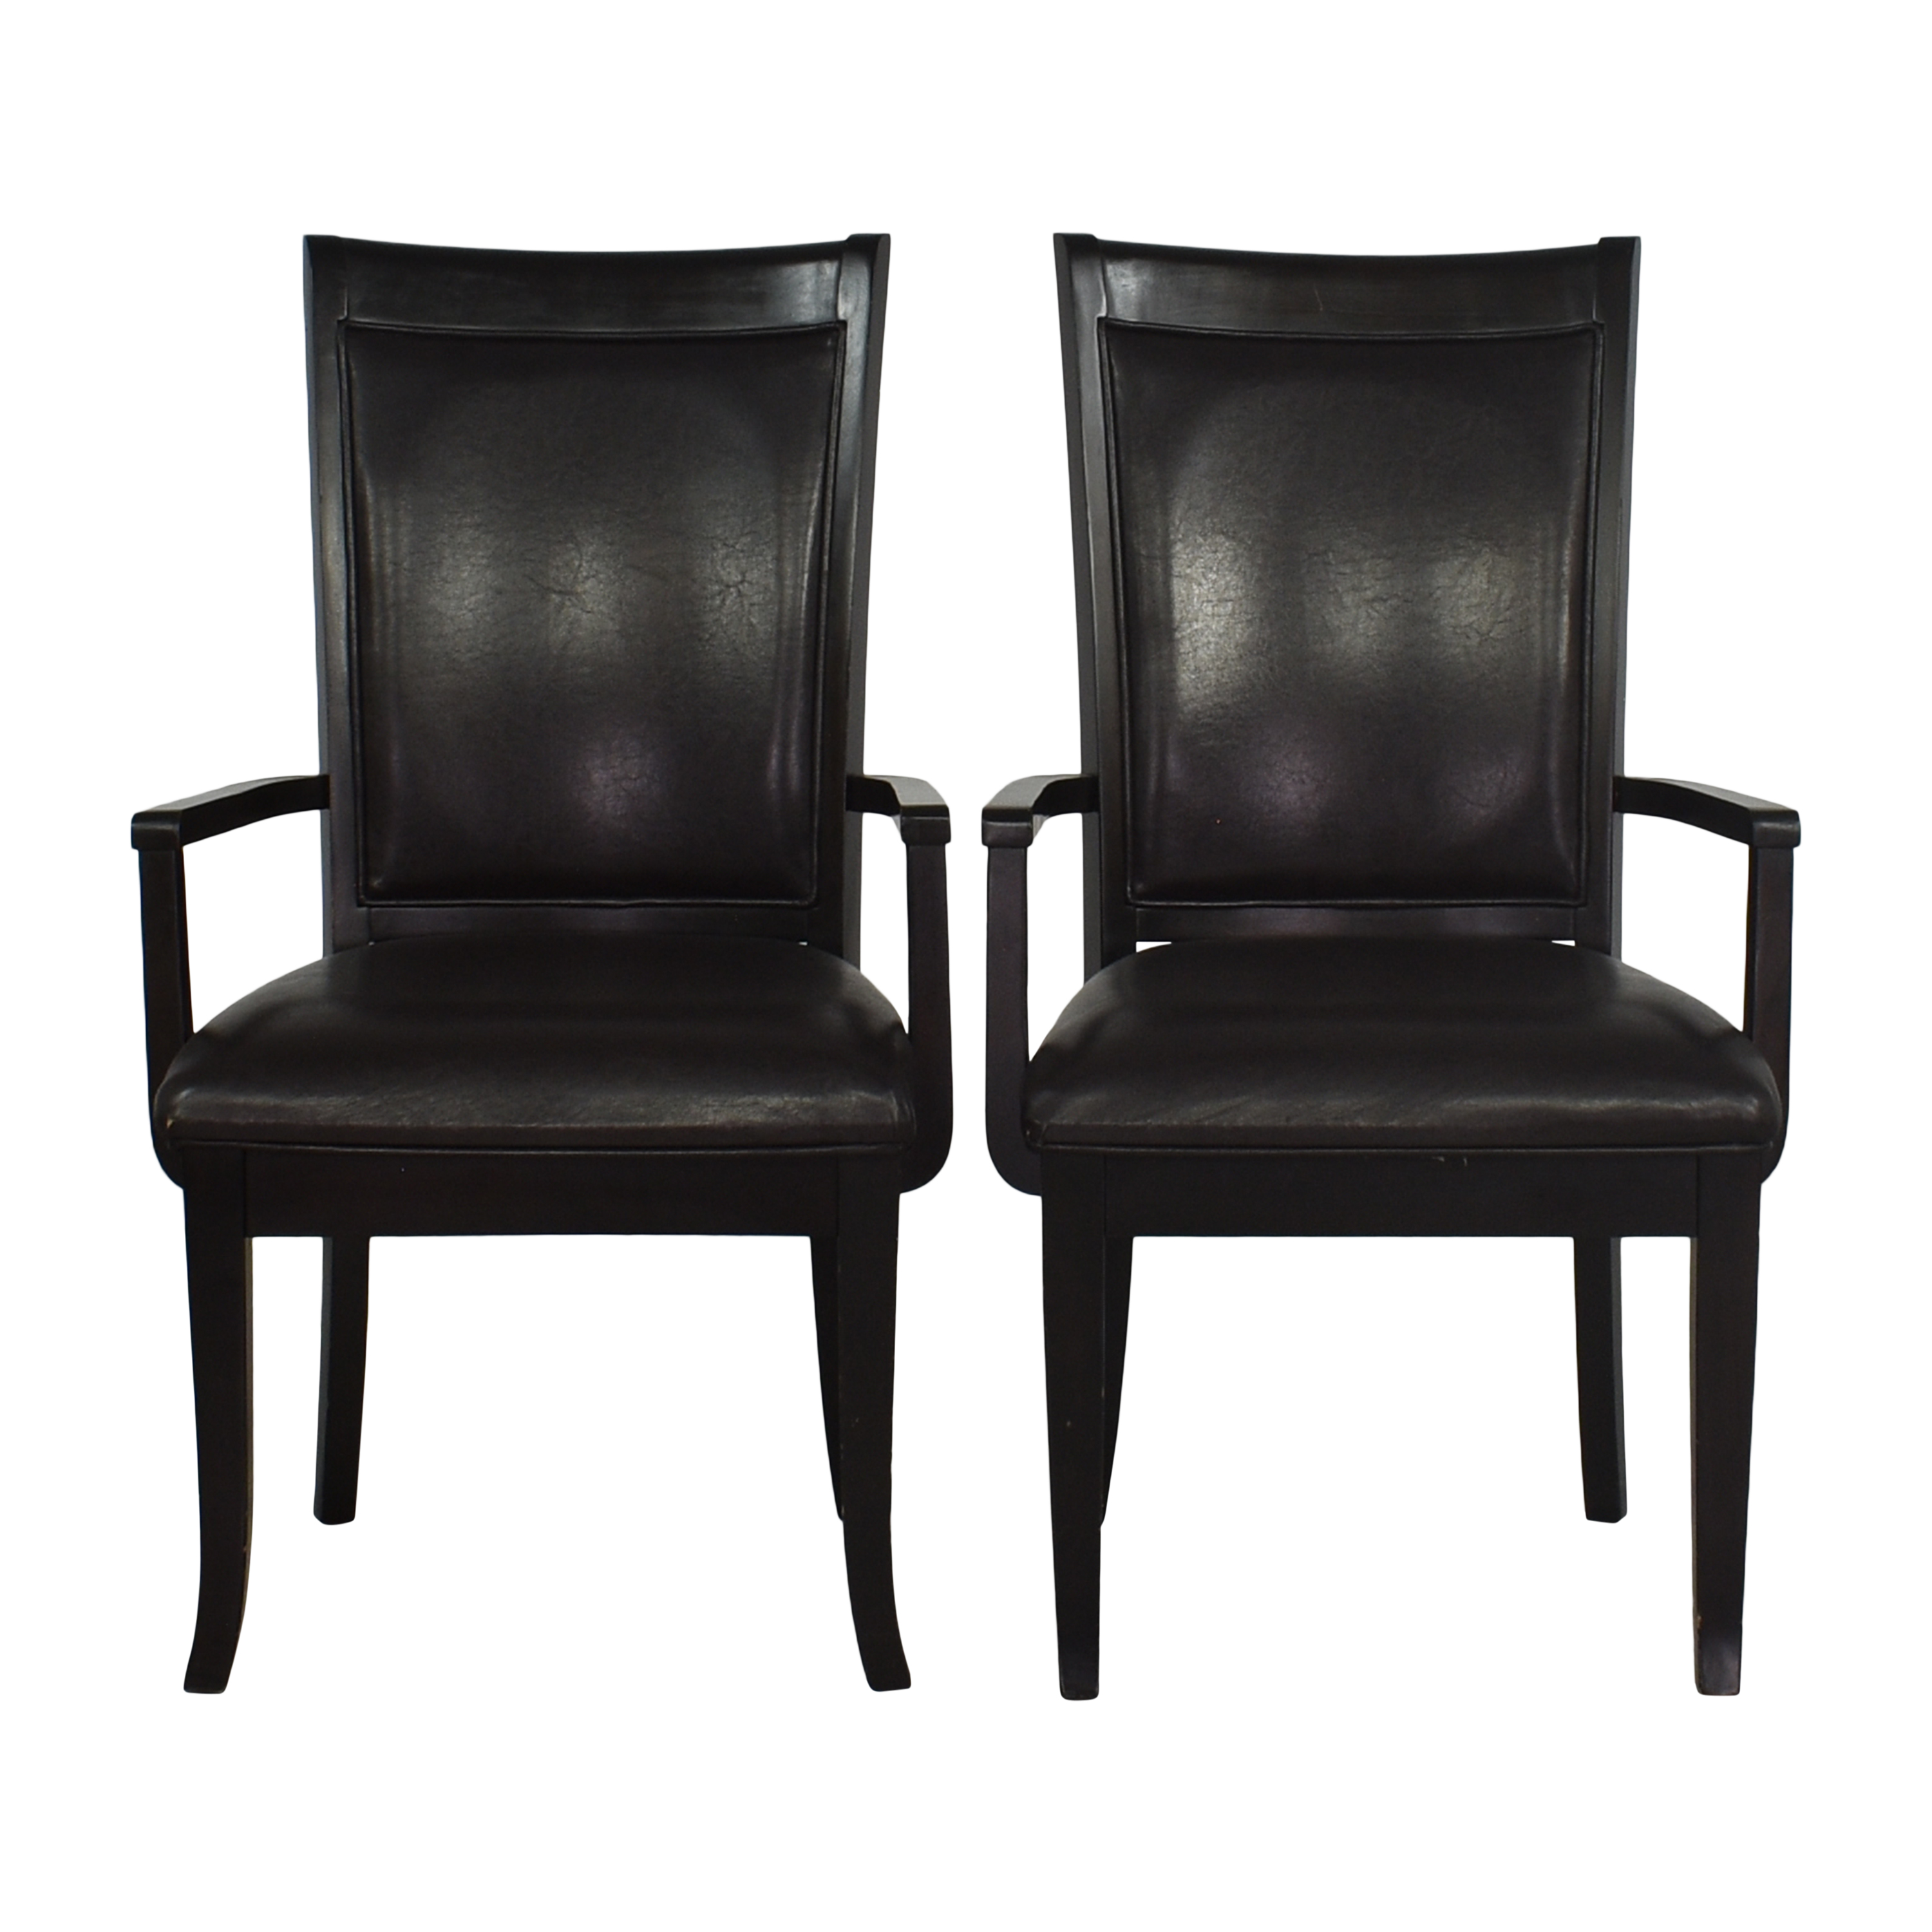 Poundex Poundex Dining Arm Chairs price